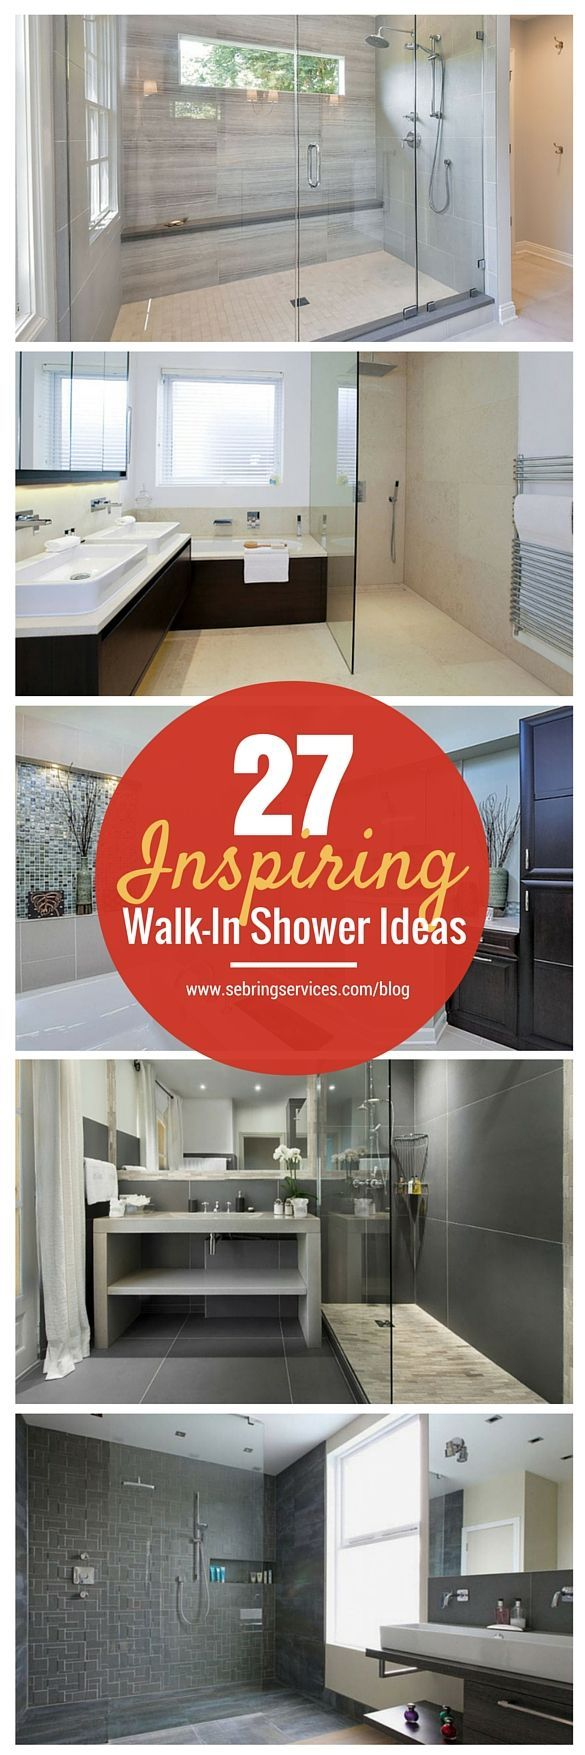 A walk-in shower creates a nice roomy feeling for your bathroom remodeling project. The lack of obstructions provides a seamless transition from the rest of the bathroom into the shower area. Not only is a walk-in shower safer, especially for the elderly and children, it also works perfectly for those who desire a relaxing minimalist bathroom style.